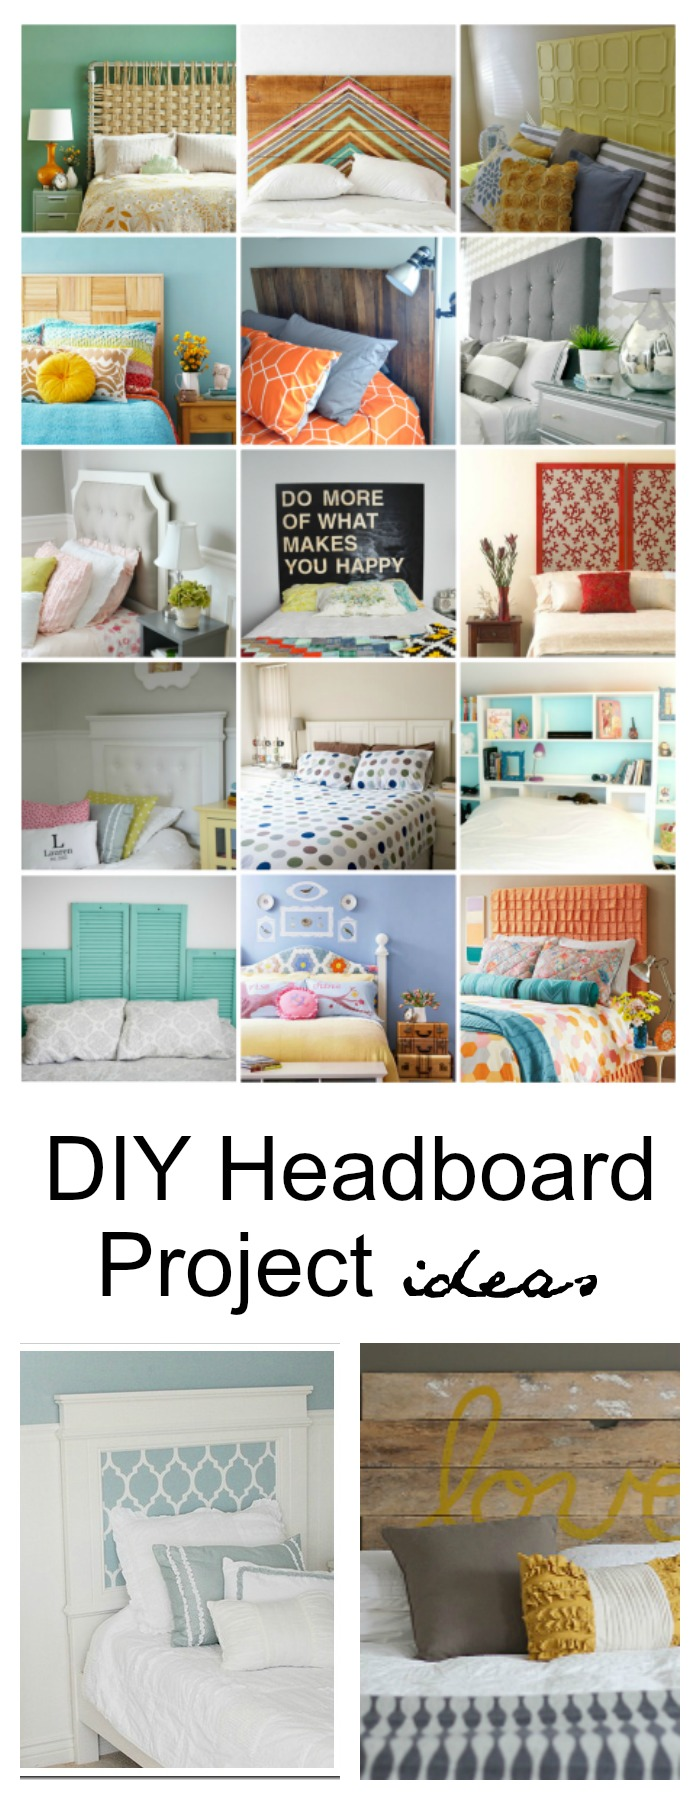 DIY-Headboard-Project-Ideas-Pin